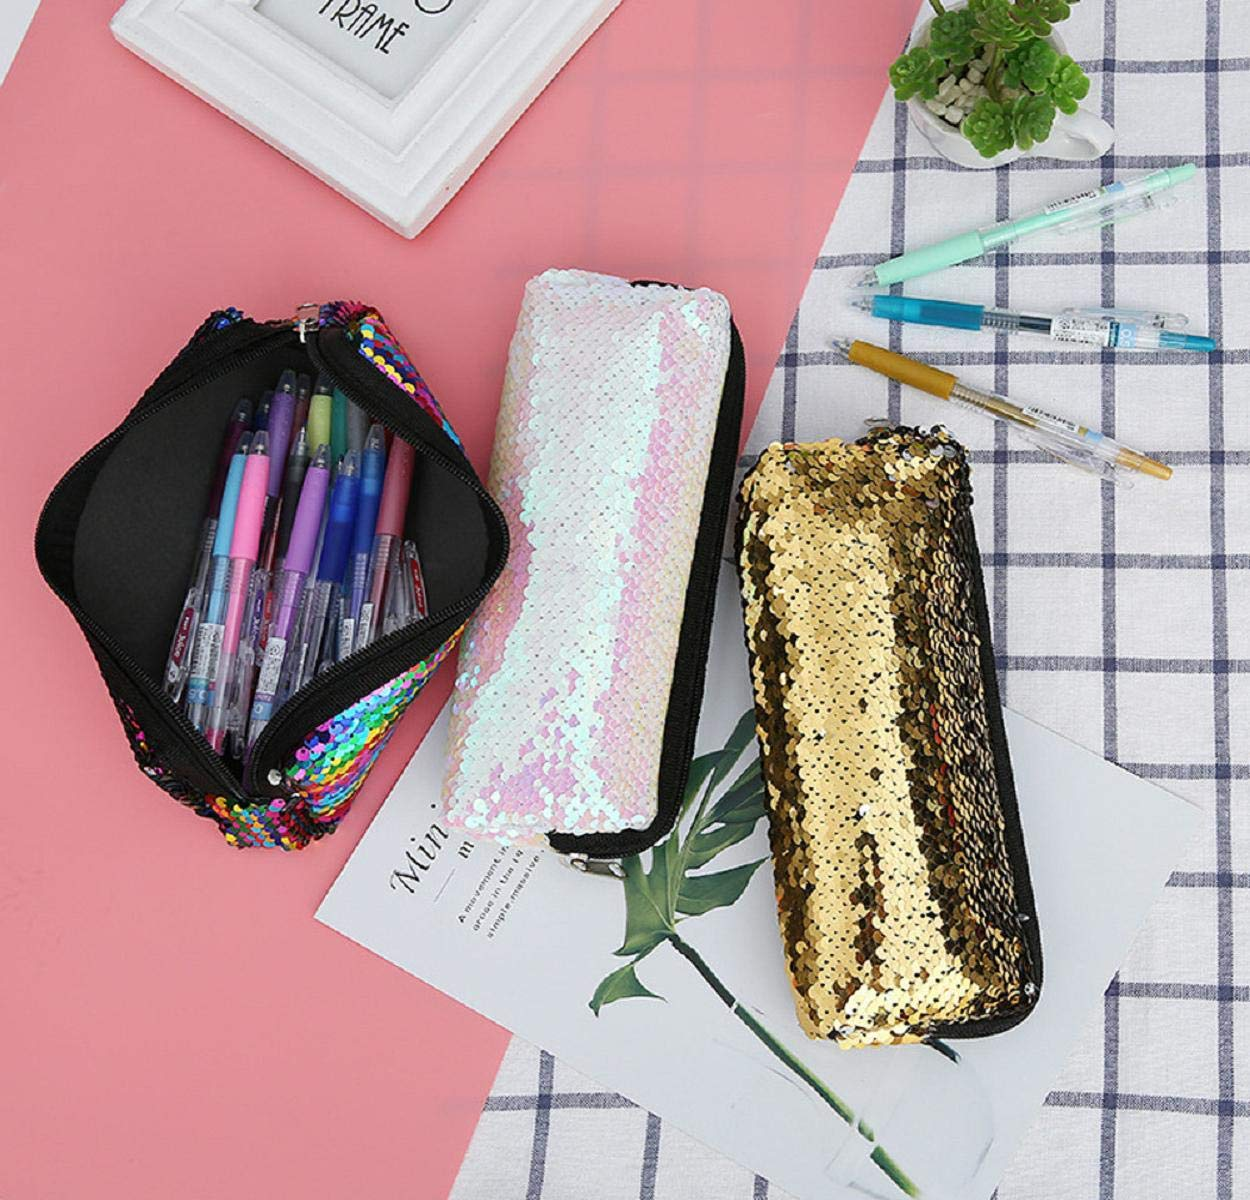 Boddenly Pencil Bags - Pencil Pouch Organizers for Home and Office, Ideal for Students, Travel Cosmetic Makeup Bag for Women, 6 Designs by Boddenly (Image #5)